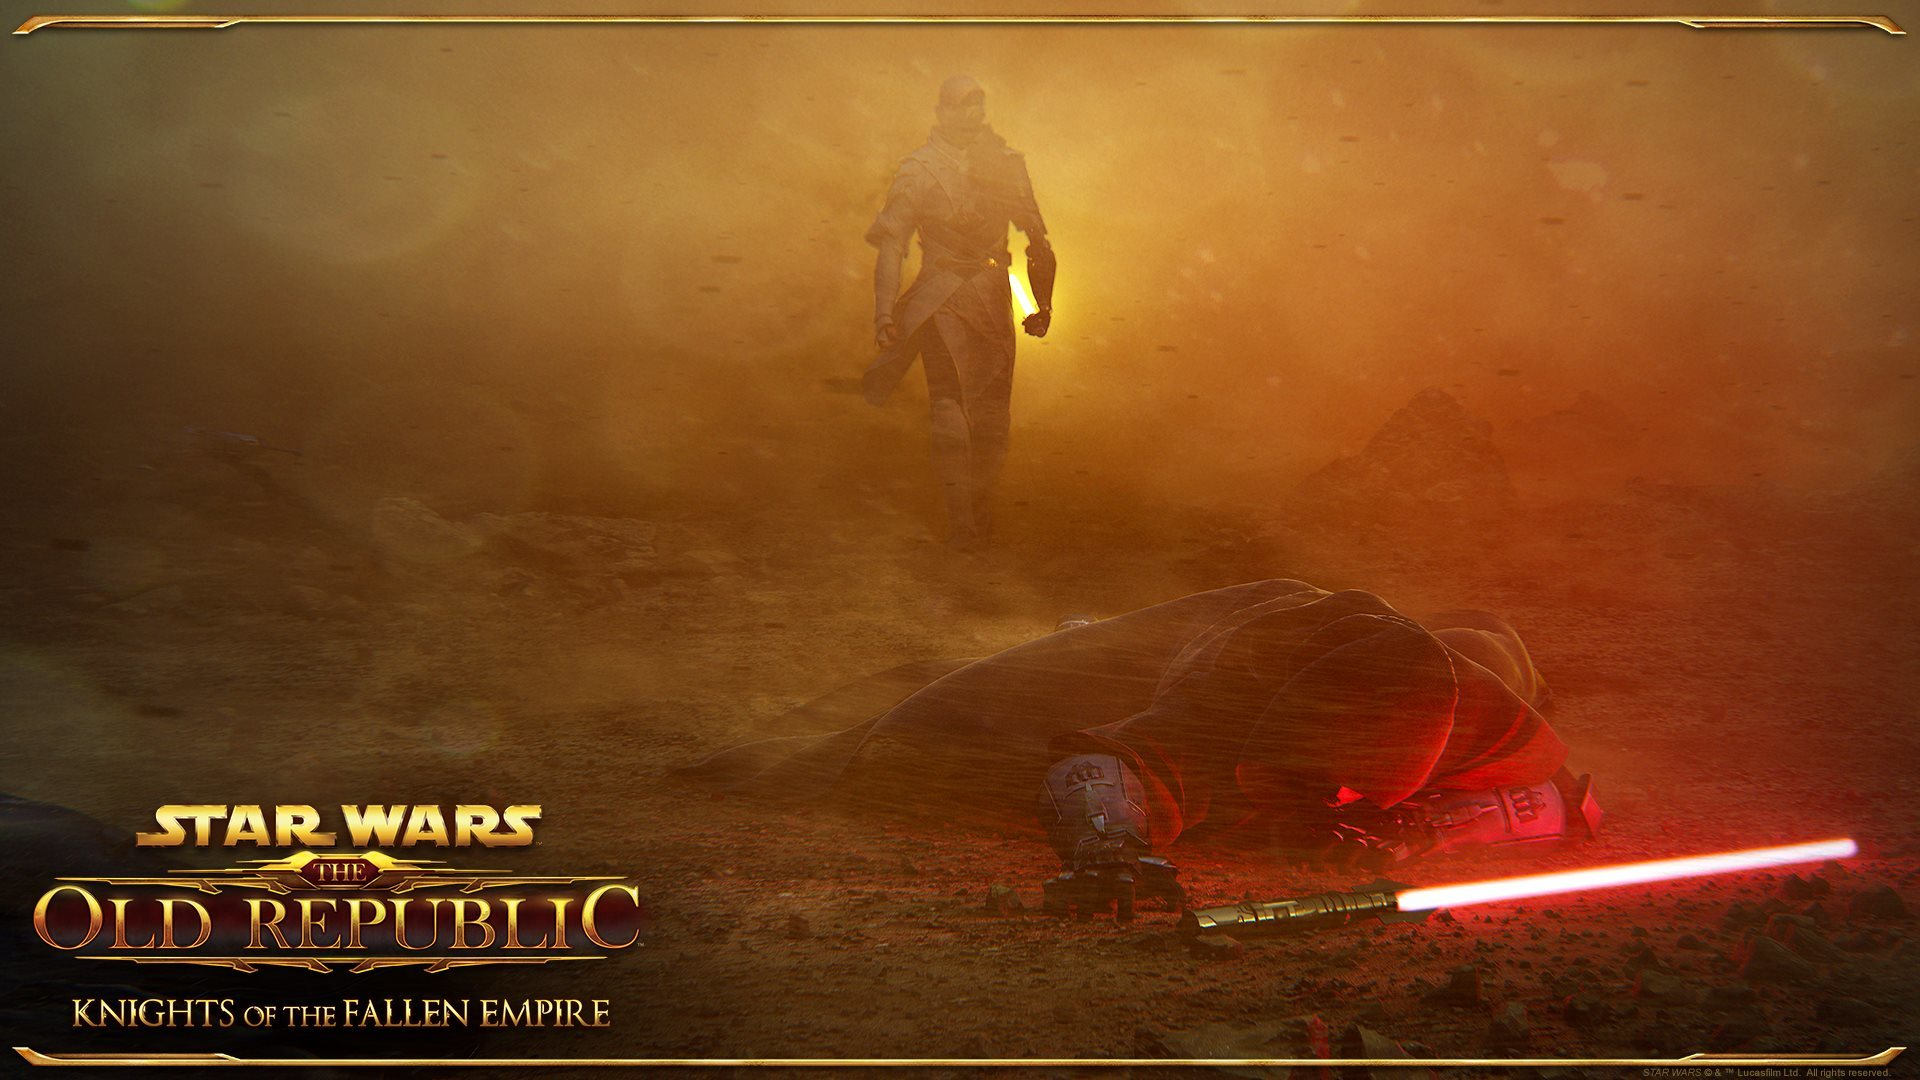 Download Wallpaper Star Wars Tor Valkorion Thexan Kotfe Swtor Arcann Knights Of The Fallen Empire Section Games In Resolution 1920x1080